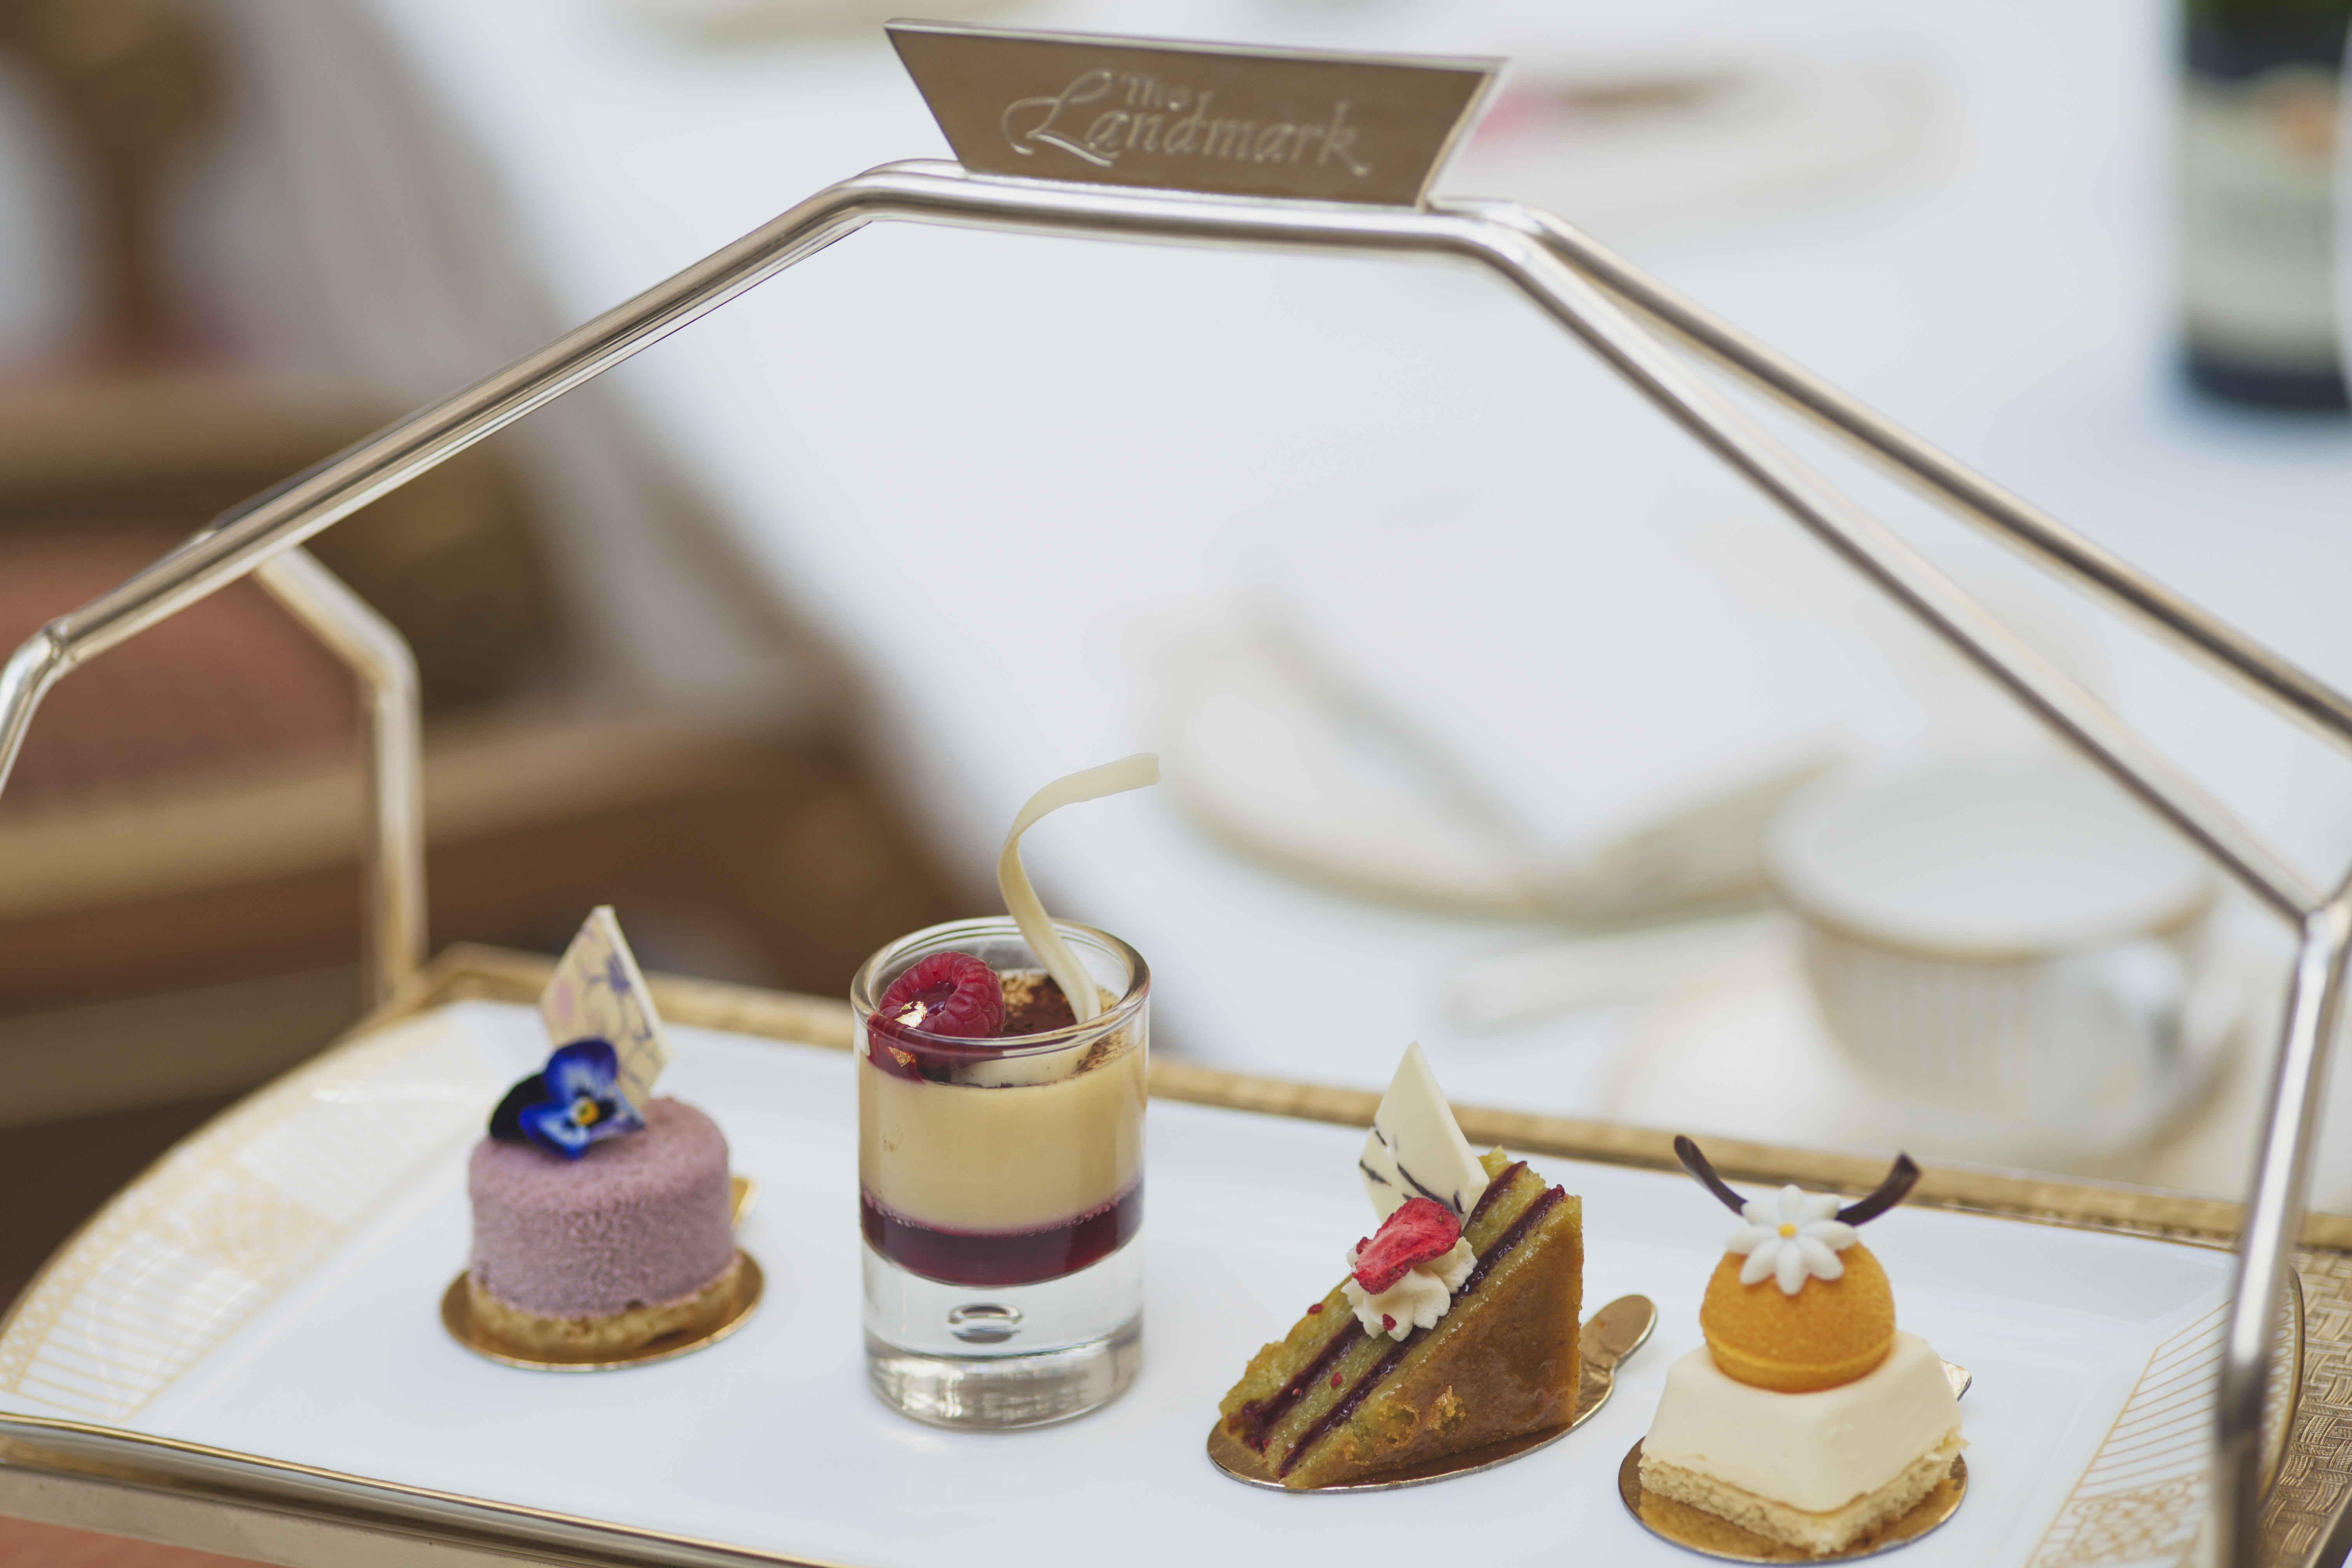 Discussion on this topic: Chocolate Afternoon Tea at Chancery Court Hotel, , chocolate-afternoon-tea-at-chancery-court-hotel/